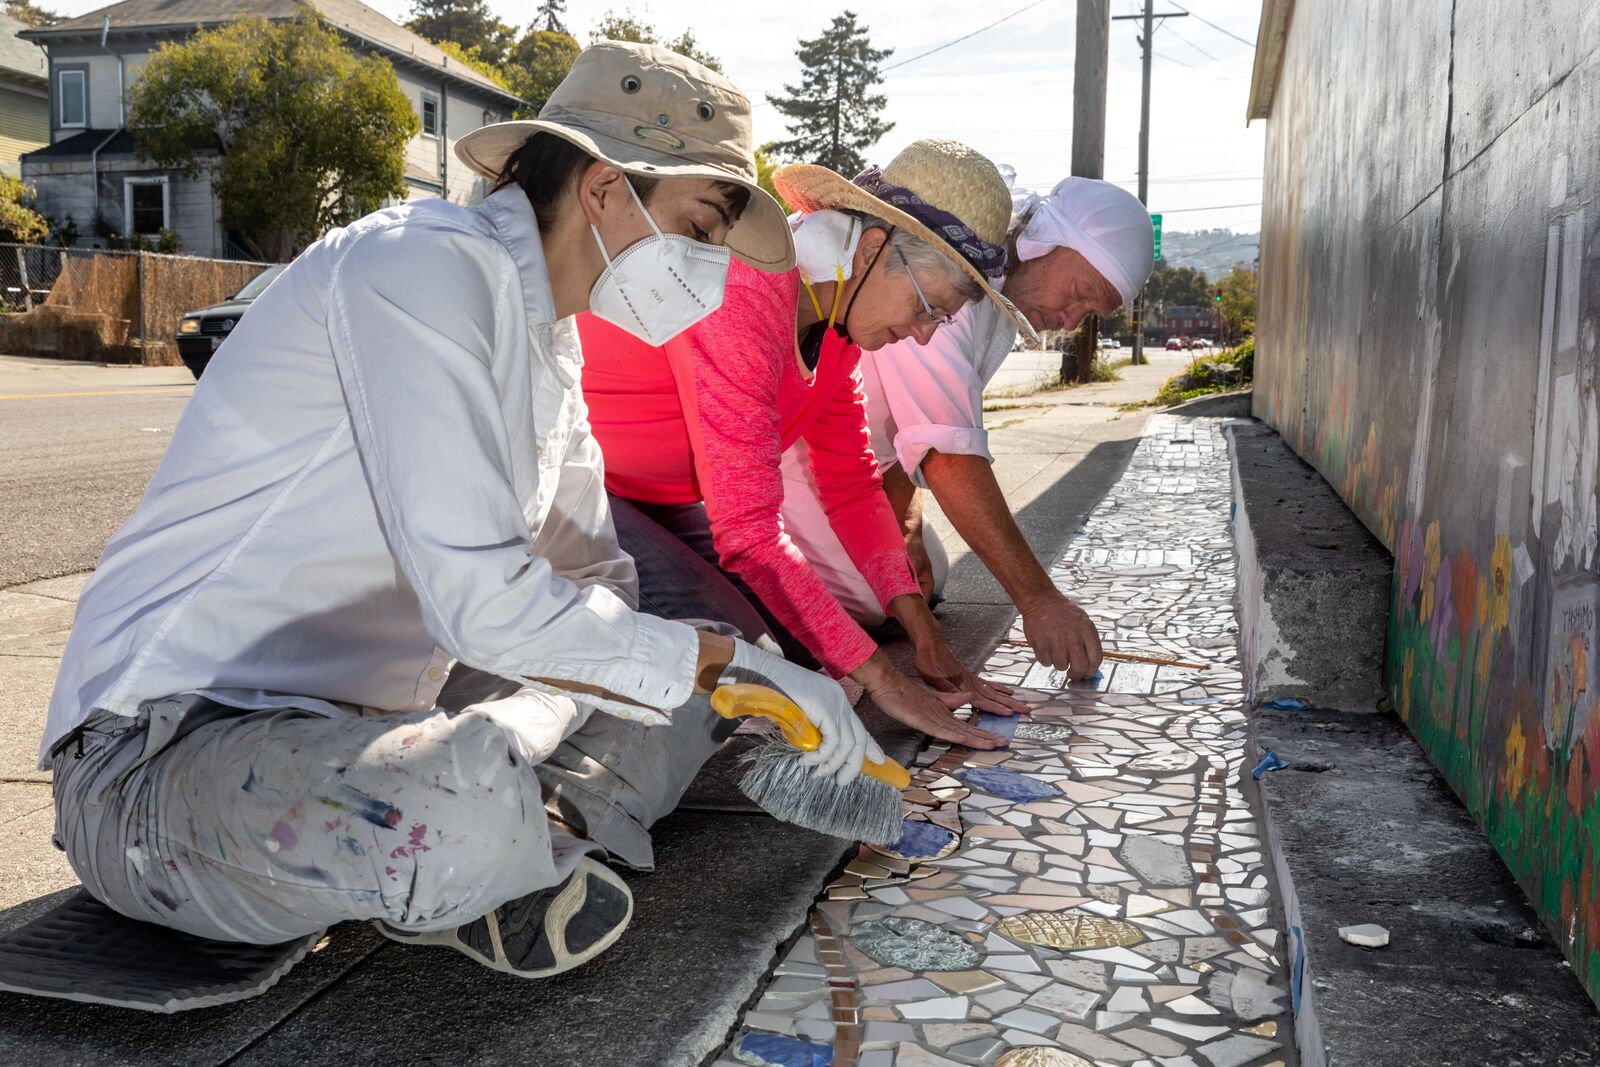 Skip Kirk, Priscilla Hine, and Billy work on the mosaic project on Ashby at Ellis on July 28, 2021. Credit: Kelly Sullivan